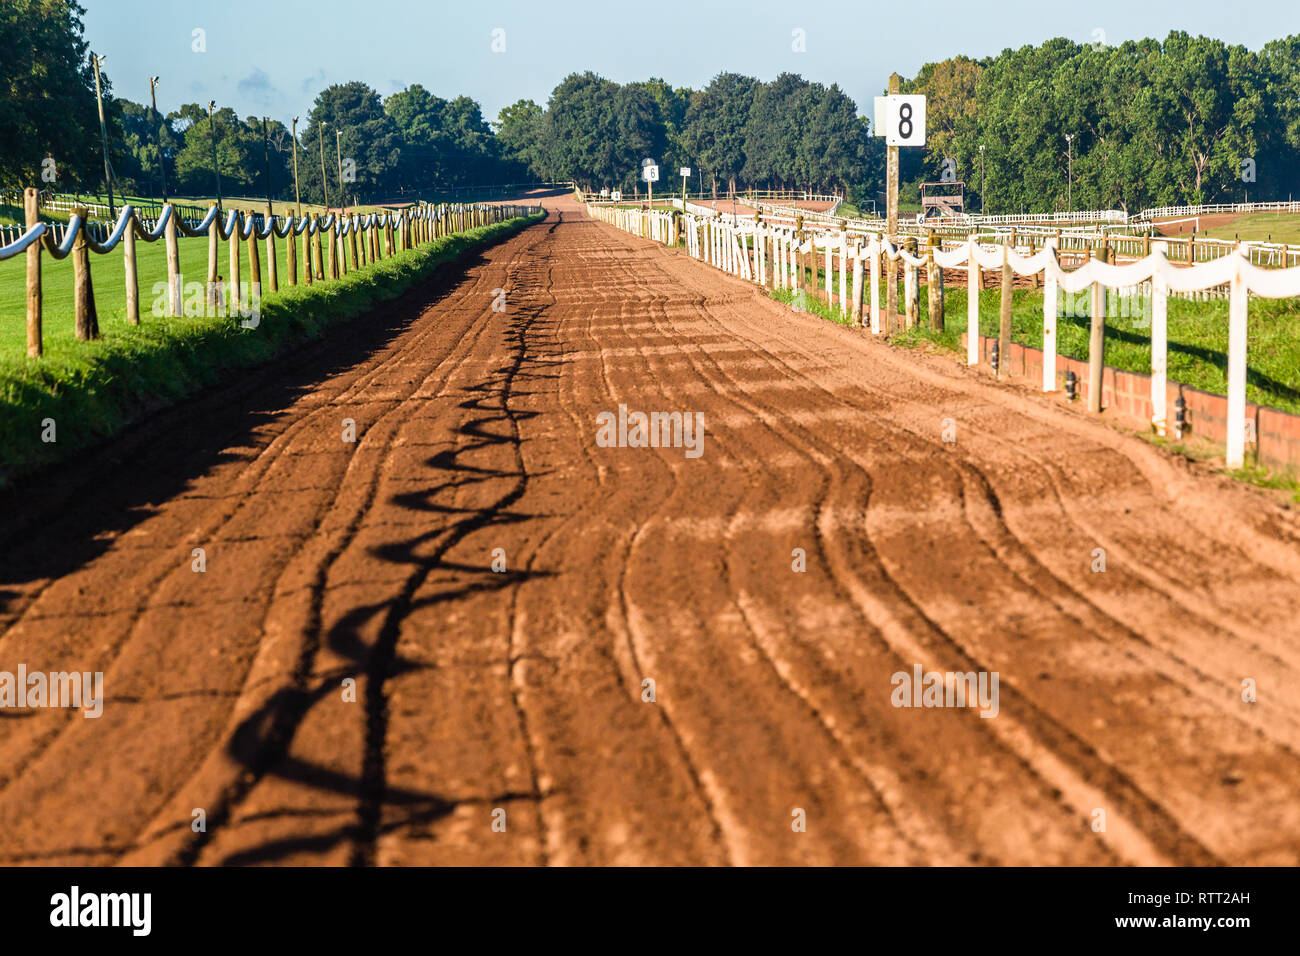 Horse race sand training  track railing fence blue sky equestrian countryside landscape. - Stock Image